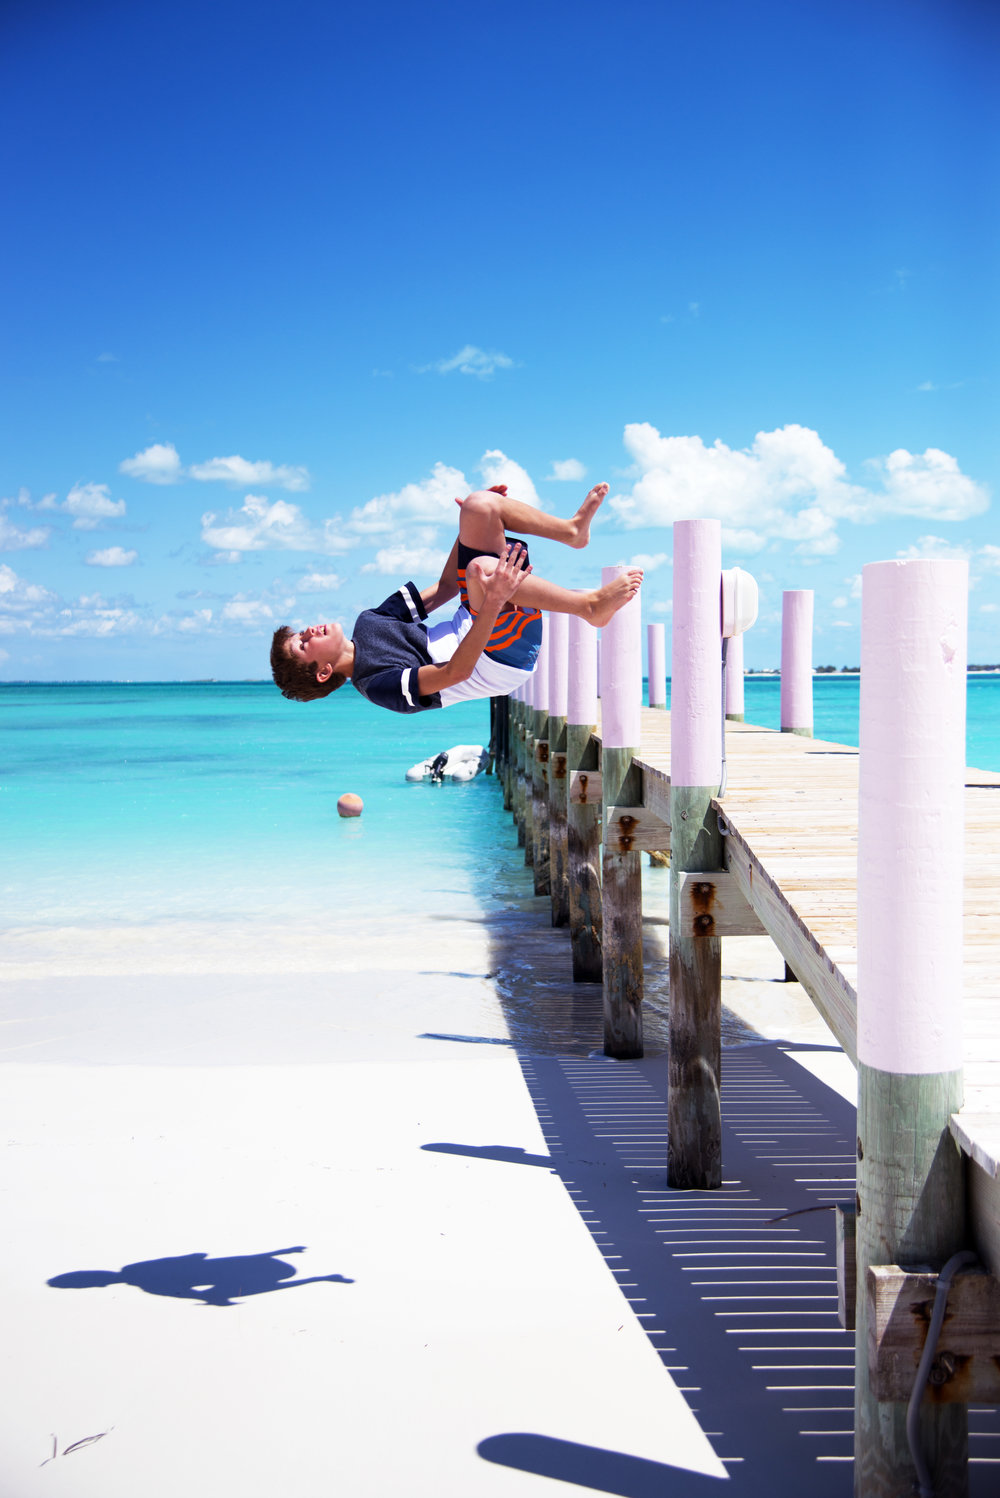 Noah Backflipping in the Bahamas.jpg